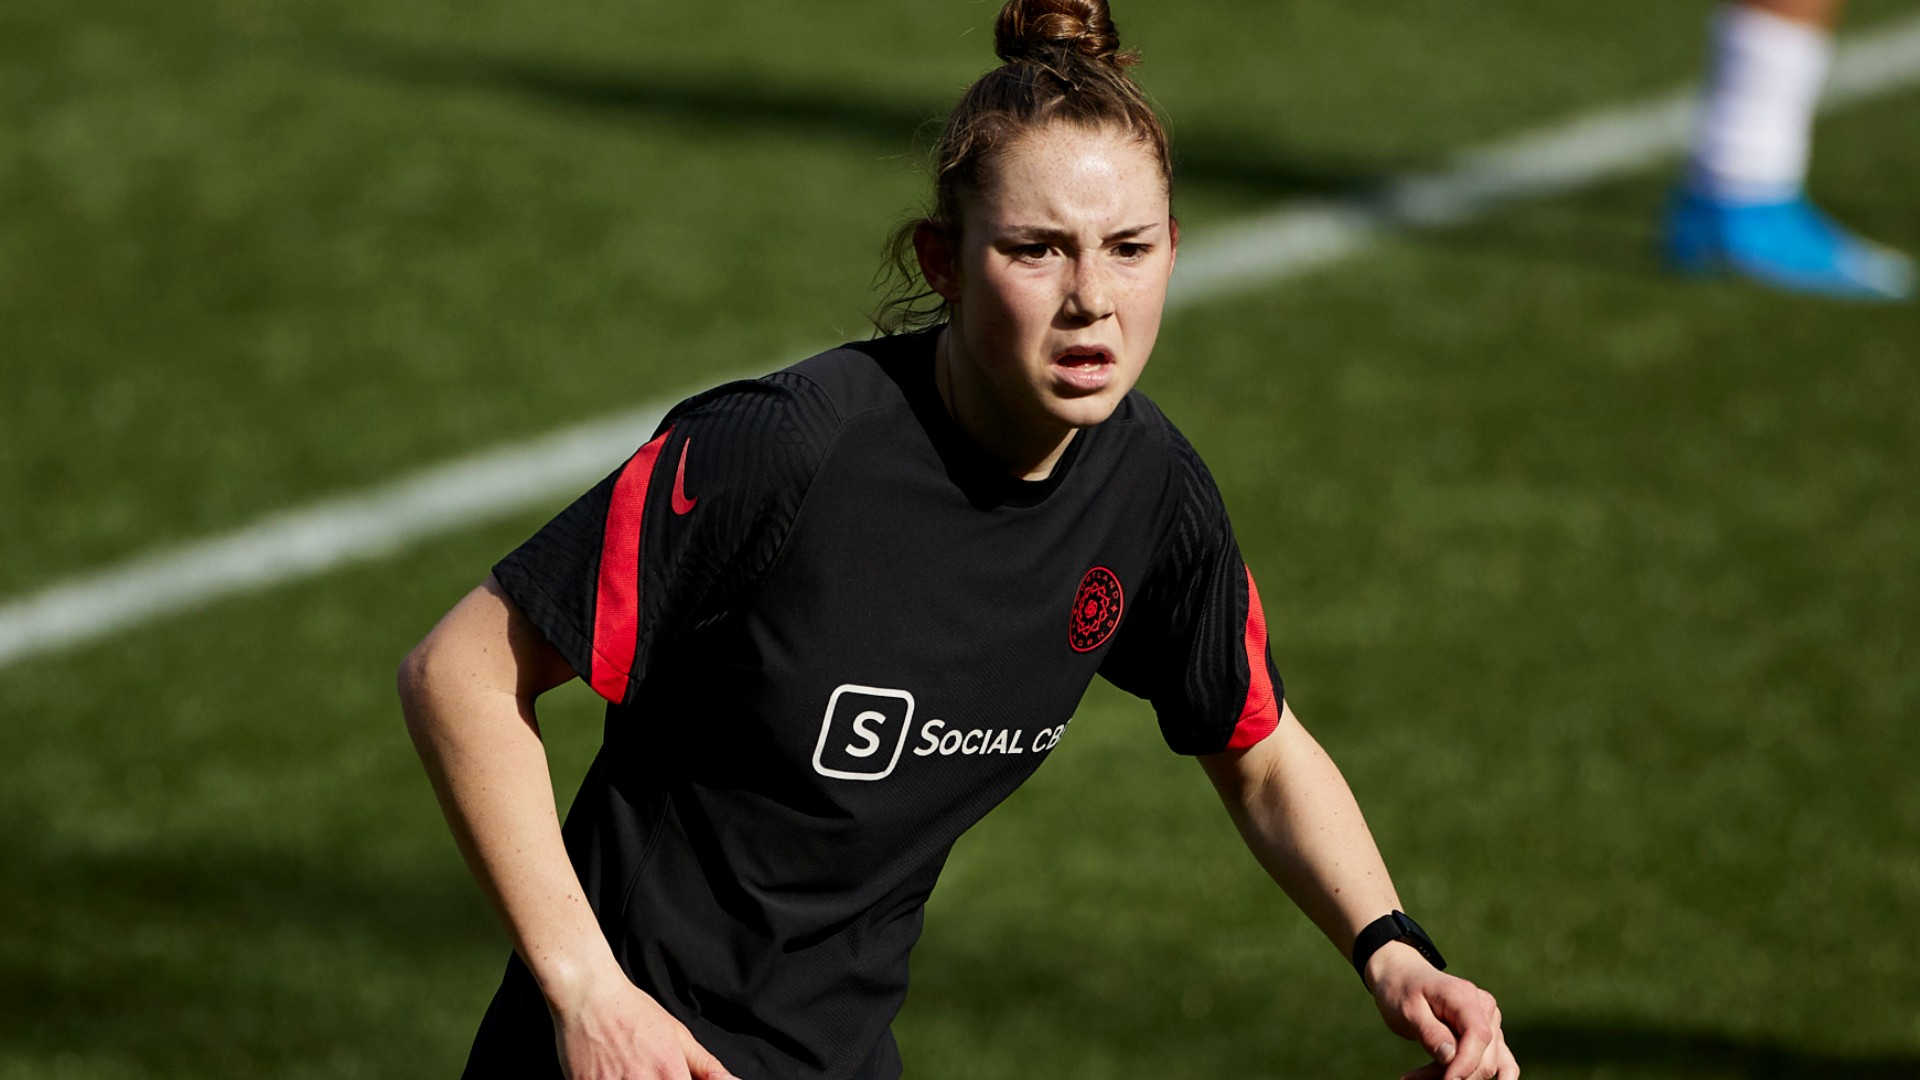 Olivia Moultrie, 15, becomes youngest player to make NWSL pro soccer debut for Portland Thorns